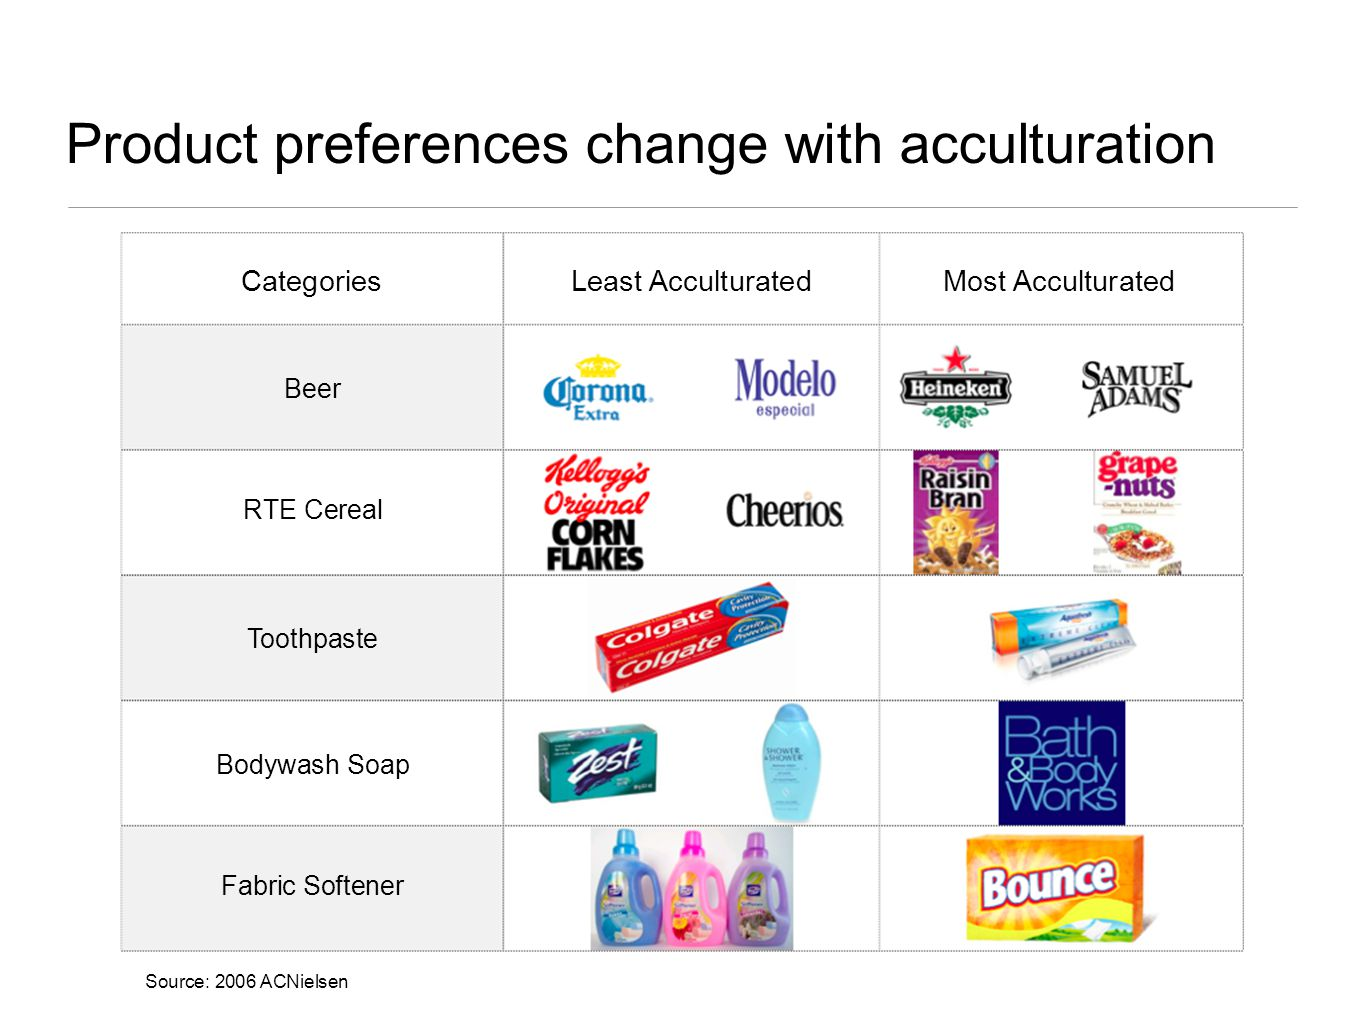 Product preferences change with acculturation Source: 2006 ACNielsen CategoriesLeast AcculturatedMost Acculturated Beer RTE Cereal Toothpaste Bodywash Soap Fabric Softener